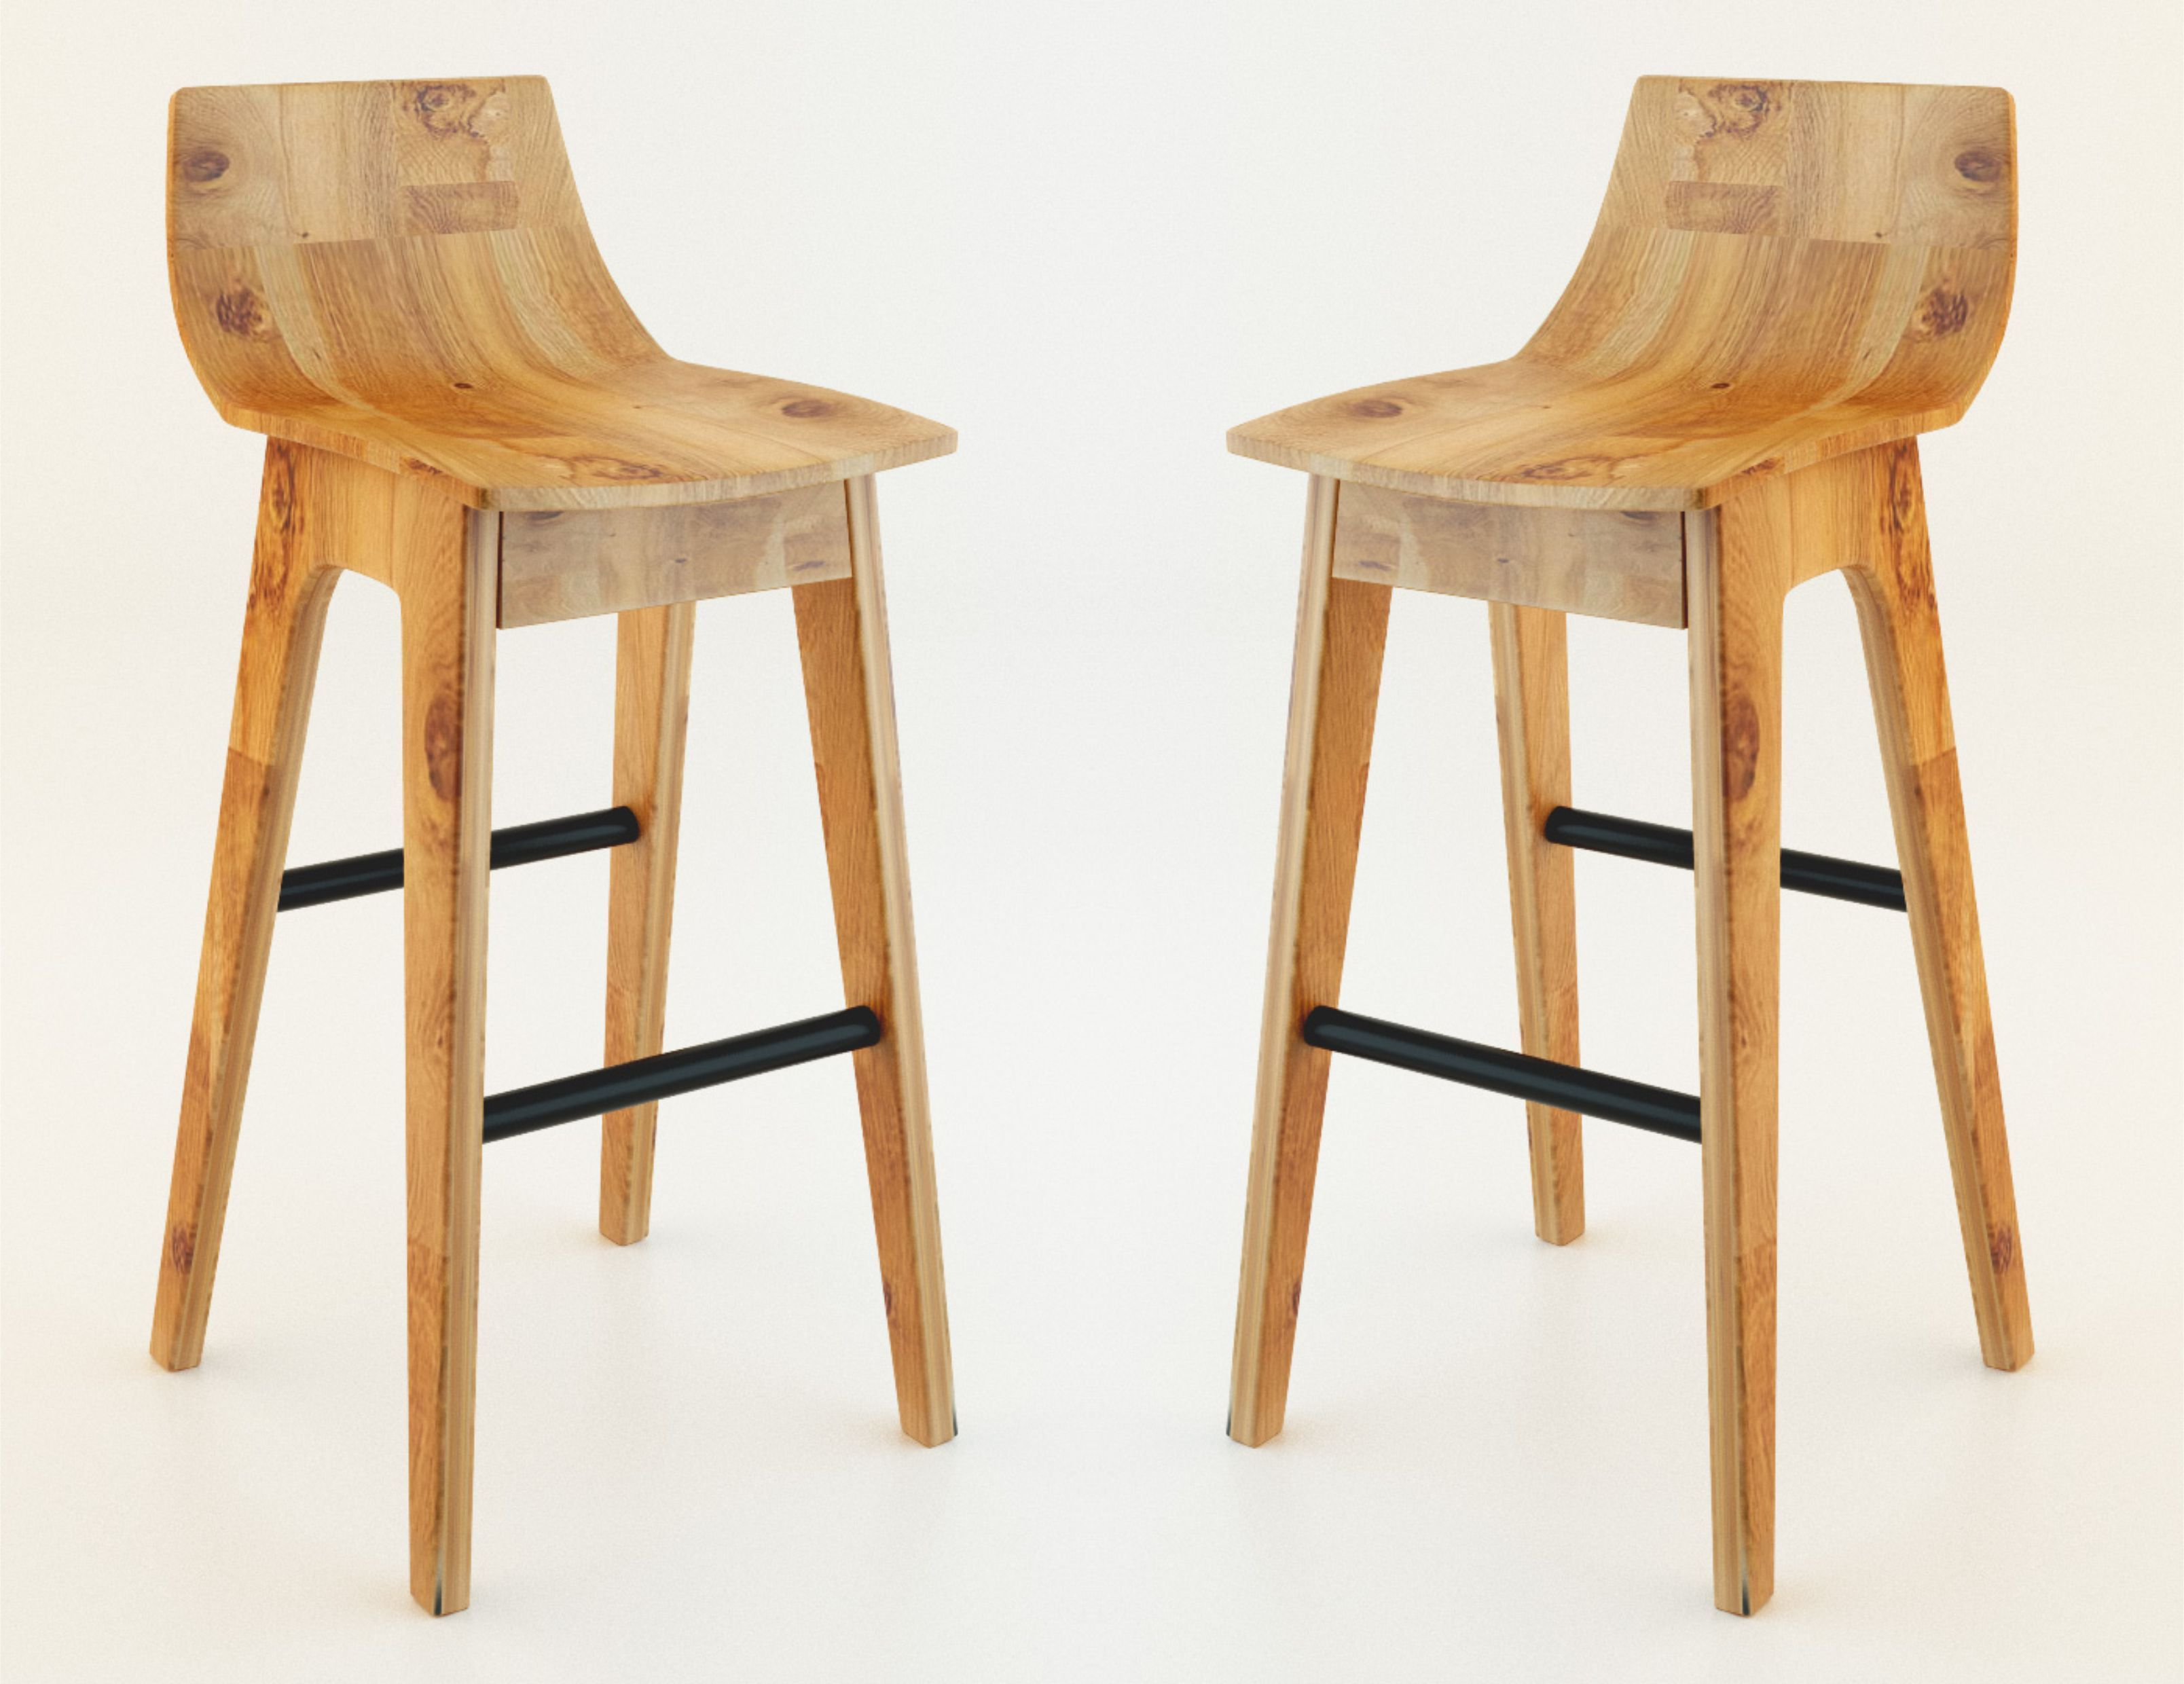 wooden bar stool 3D model